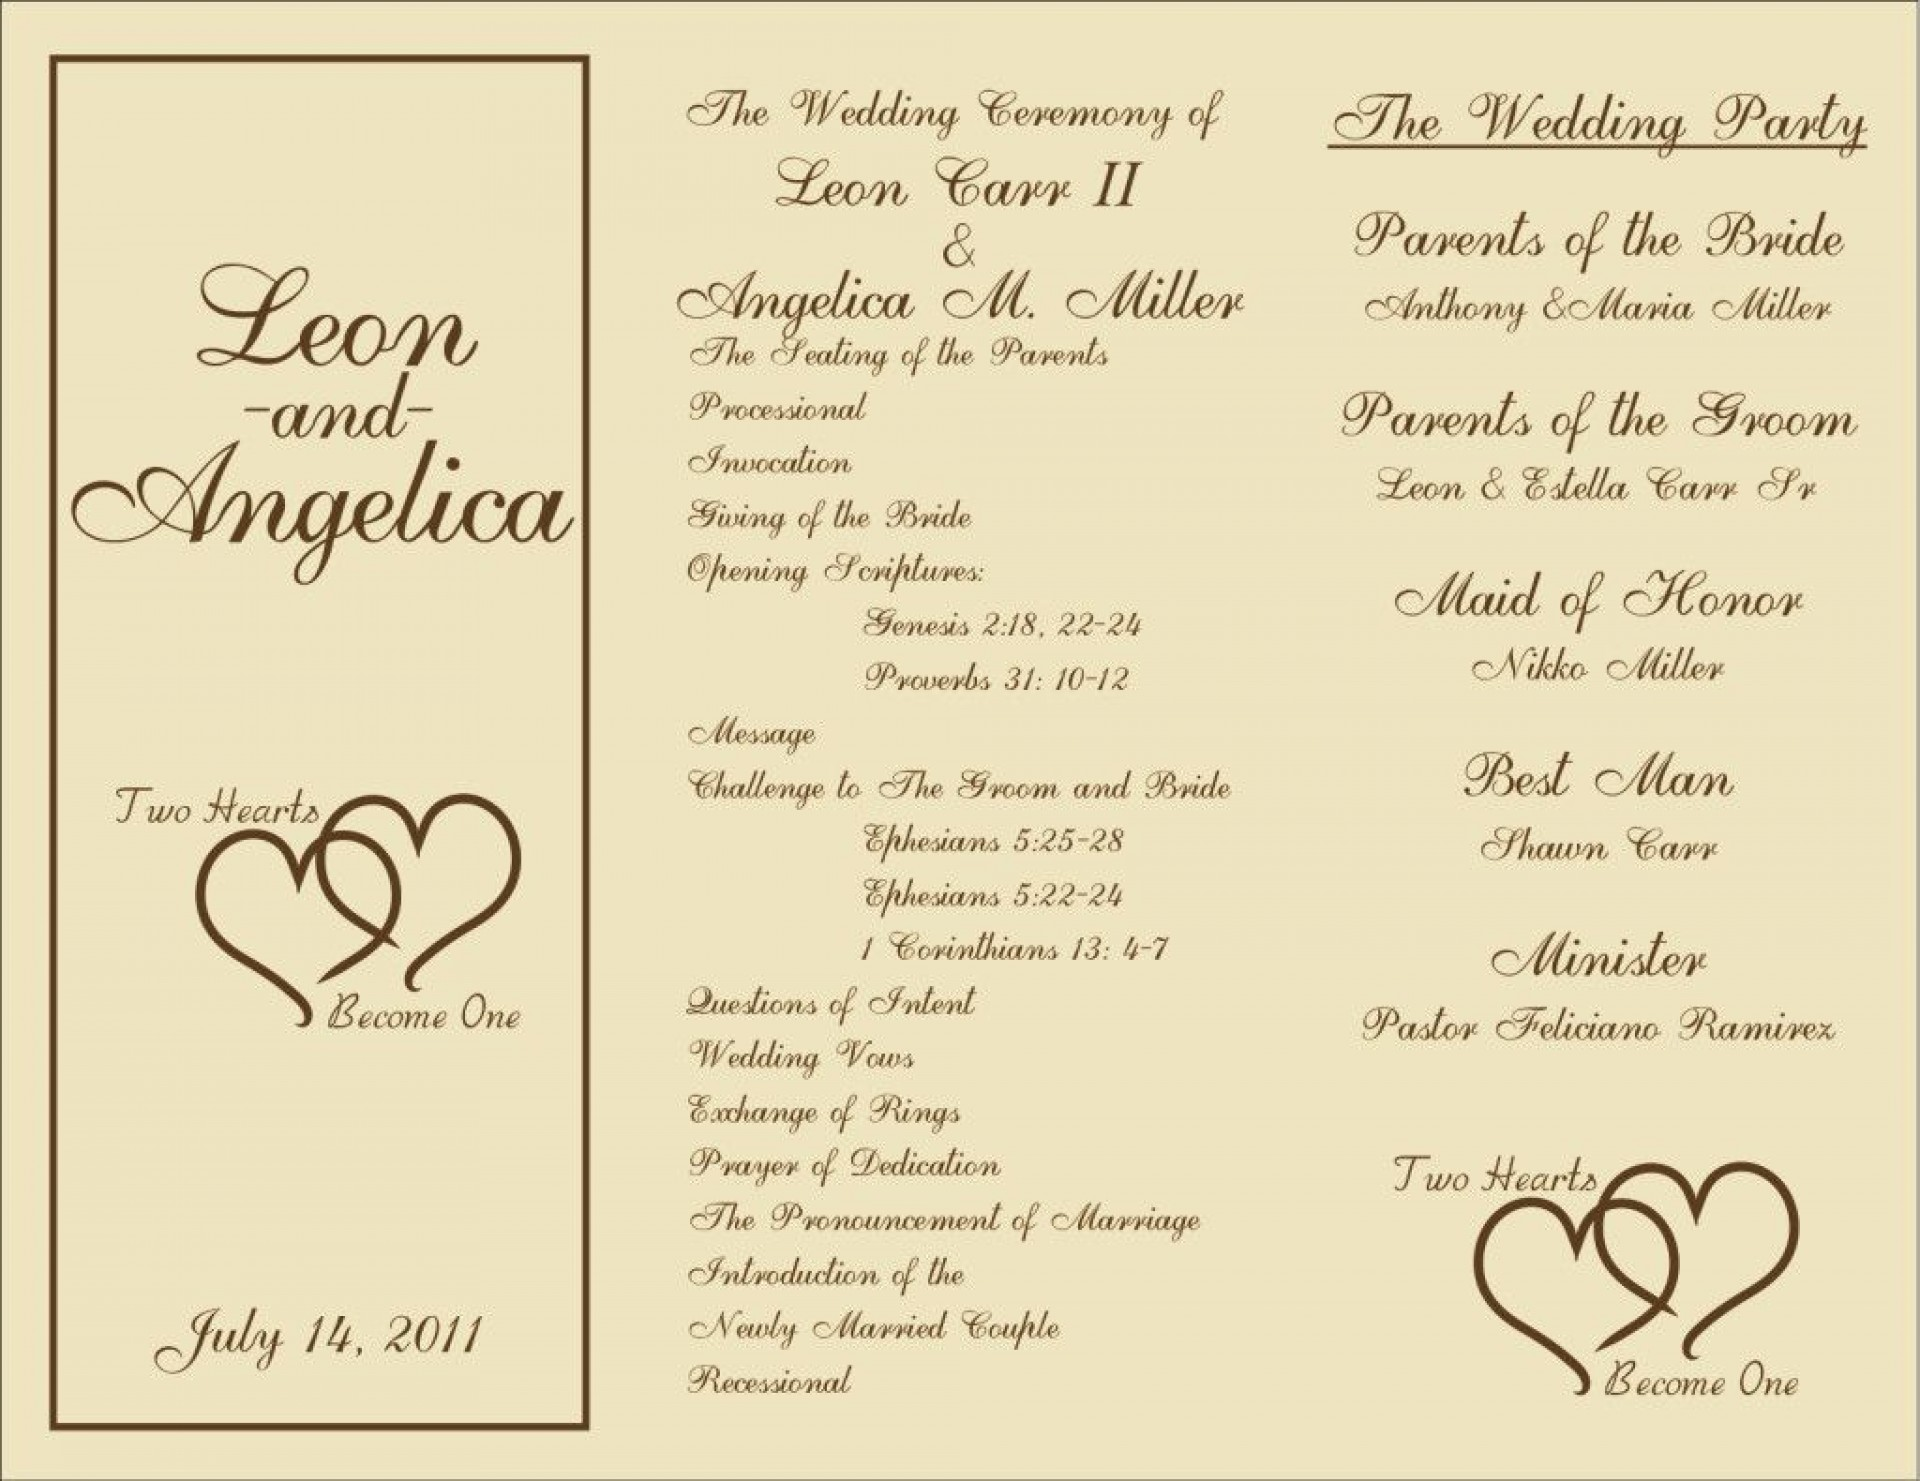 000 Unforgettable Catholic Wedding Program Template Example  Roman Idea (with Readings)1920